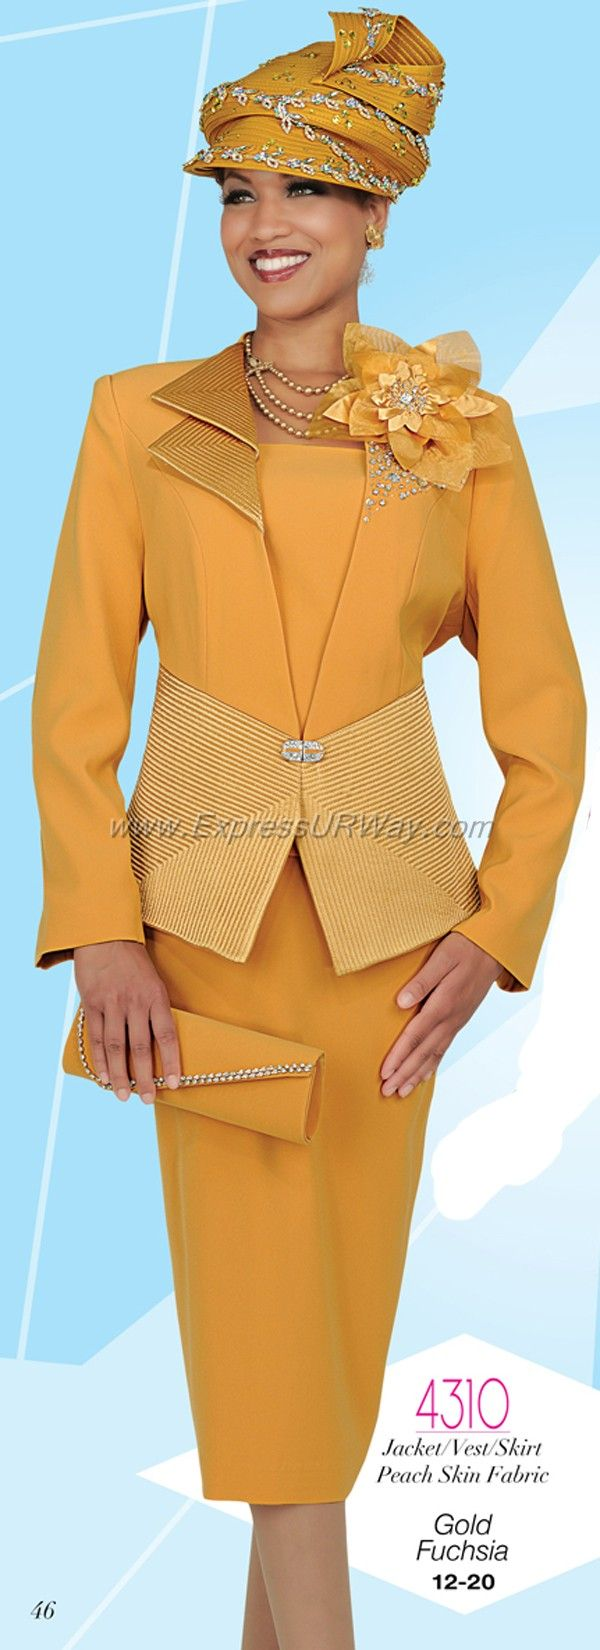 Womens Church Suits by Champagne for Fall 2014 - www.ExpressURWay.com…